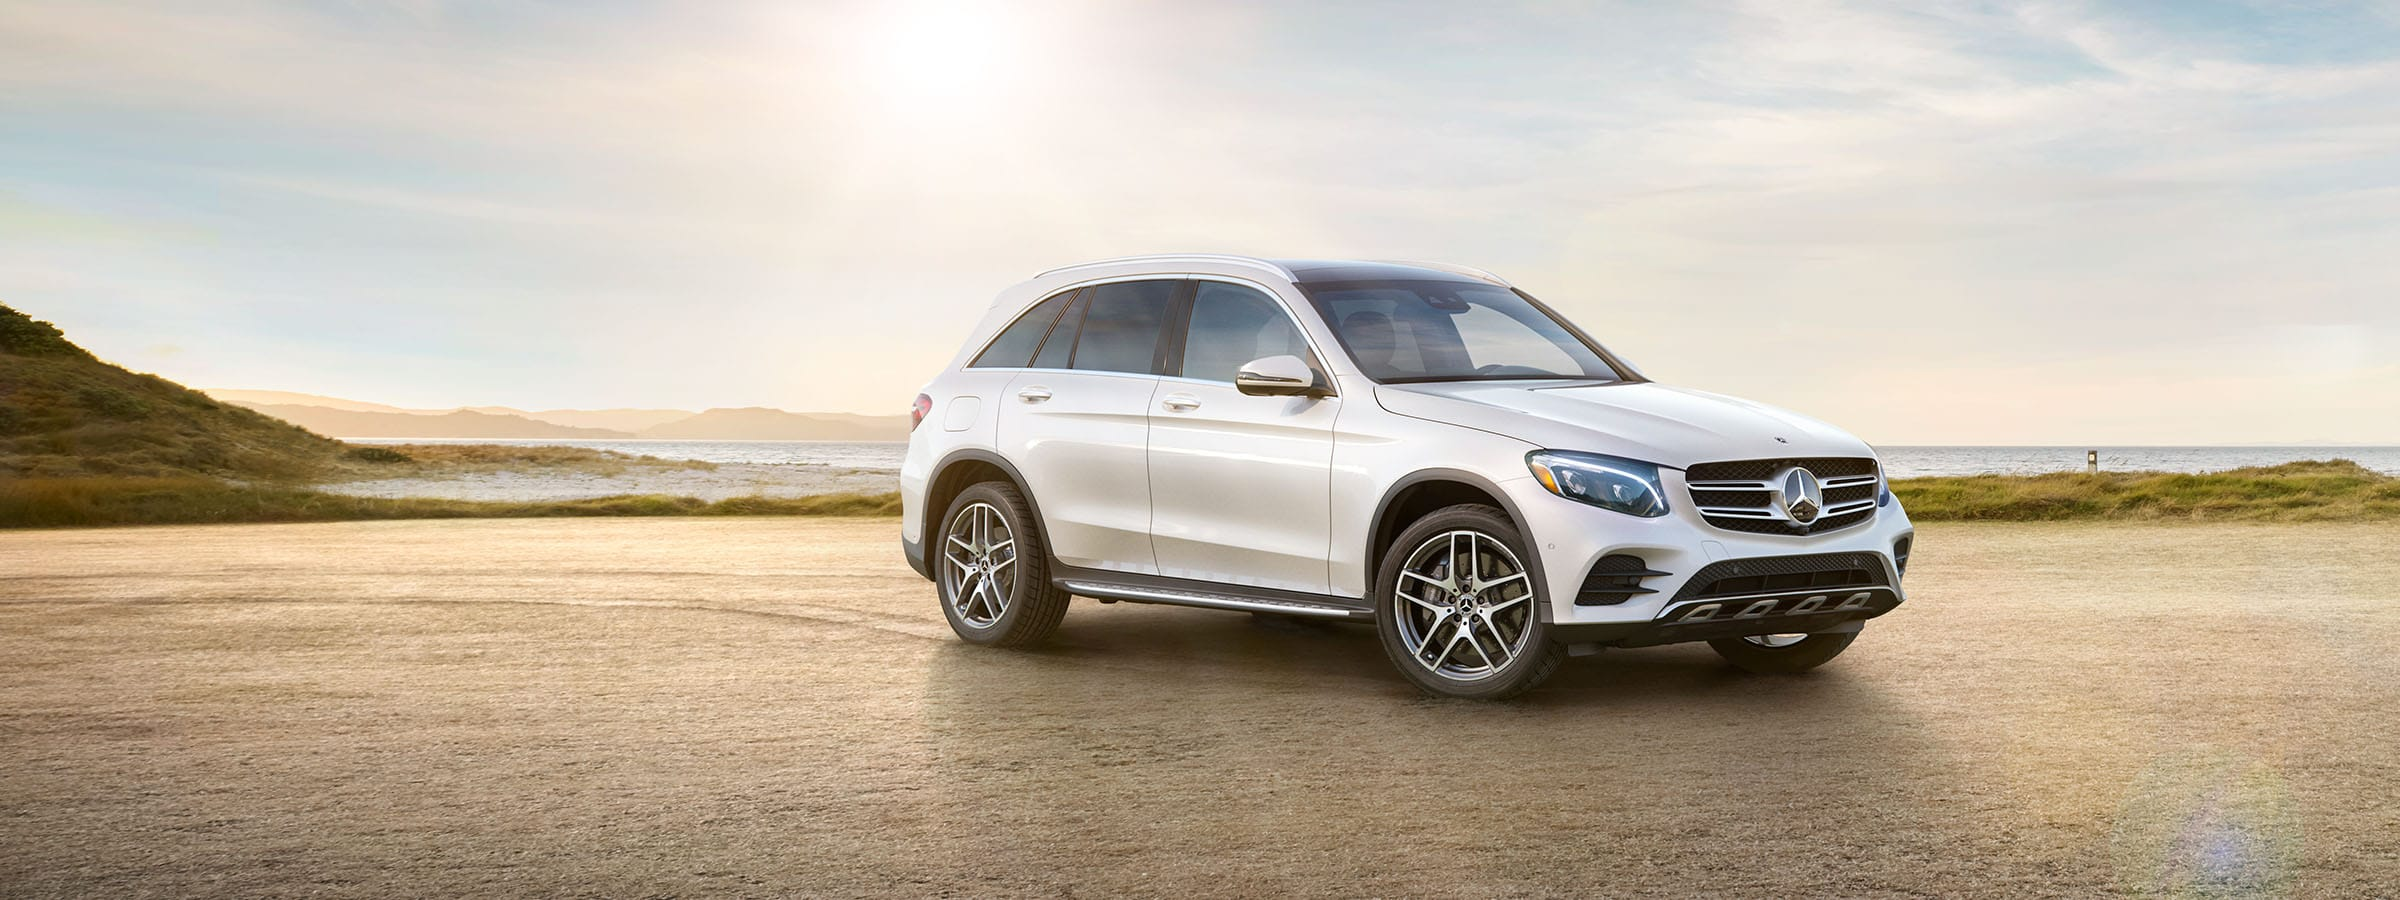 The 2019 GLC SUV in designo Diamond White with AMG Lining and Exterior Lighting Package parked on a beach.